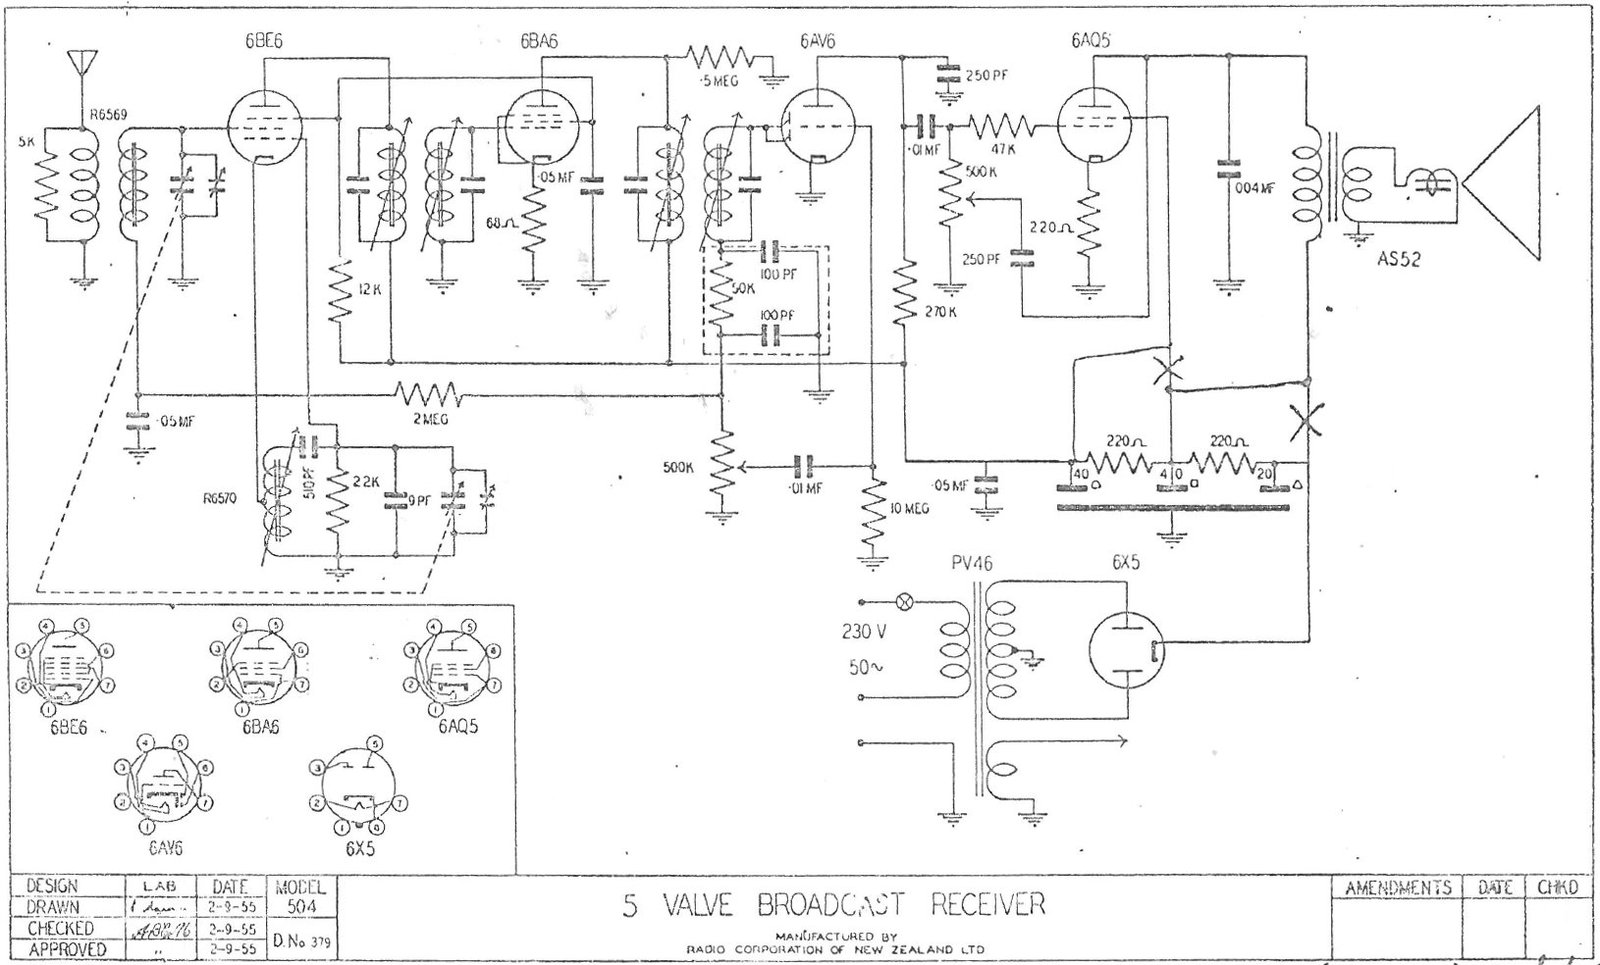 1955 Columbus model 504 Schematic